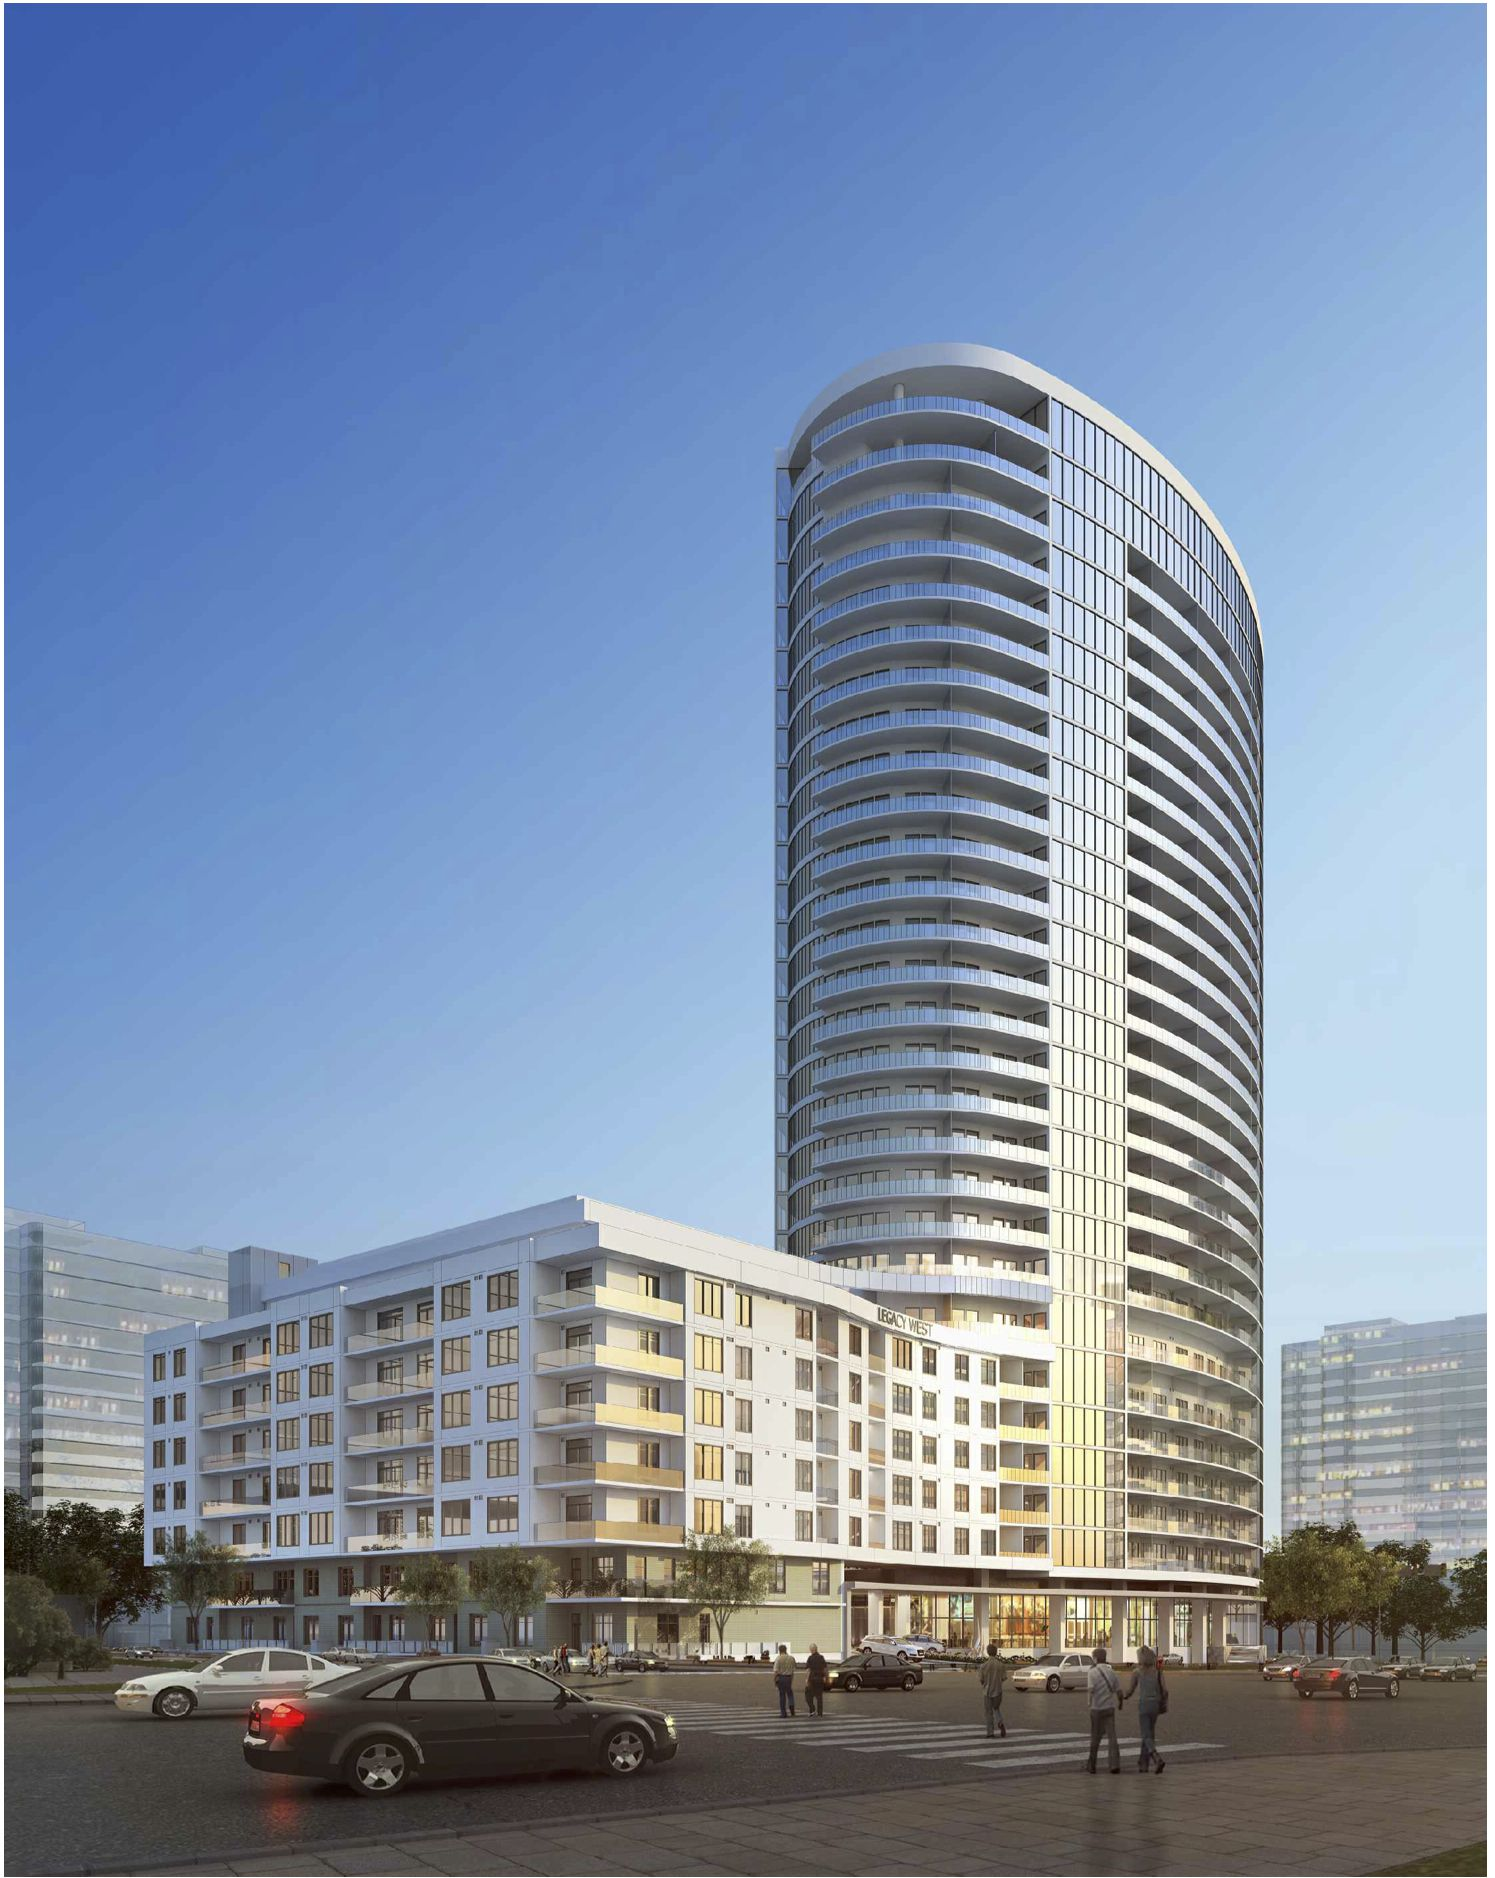 The 328-unit LVL29 apartment tower is being built west of the Dallas North Tollway in Legacy West.